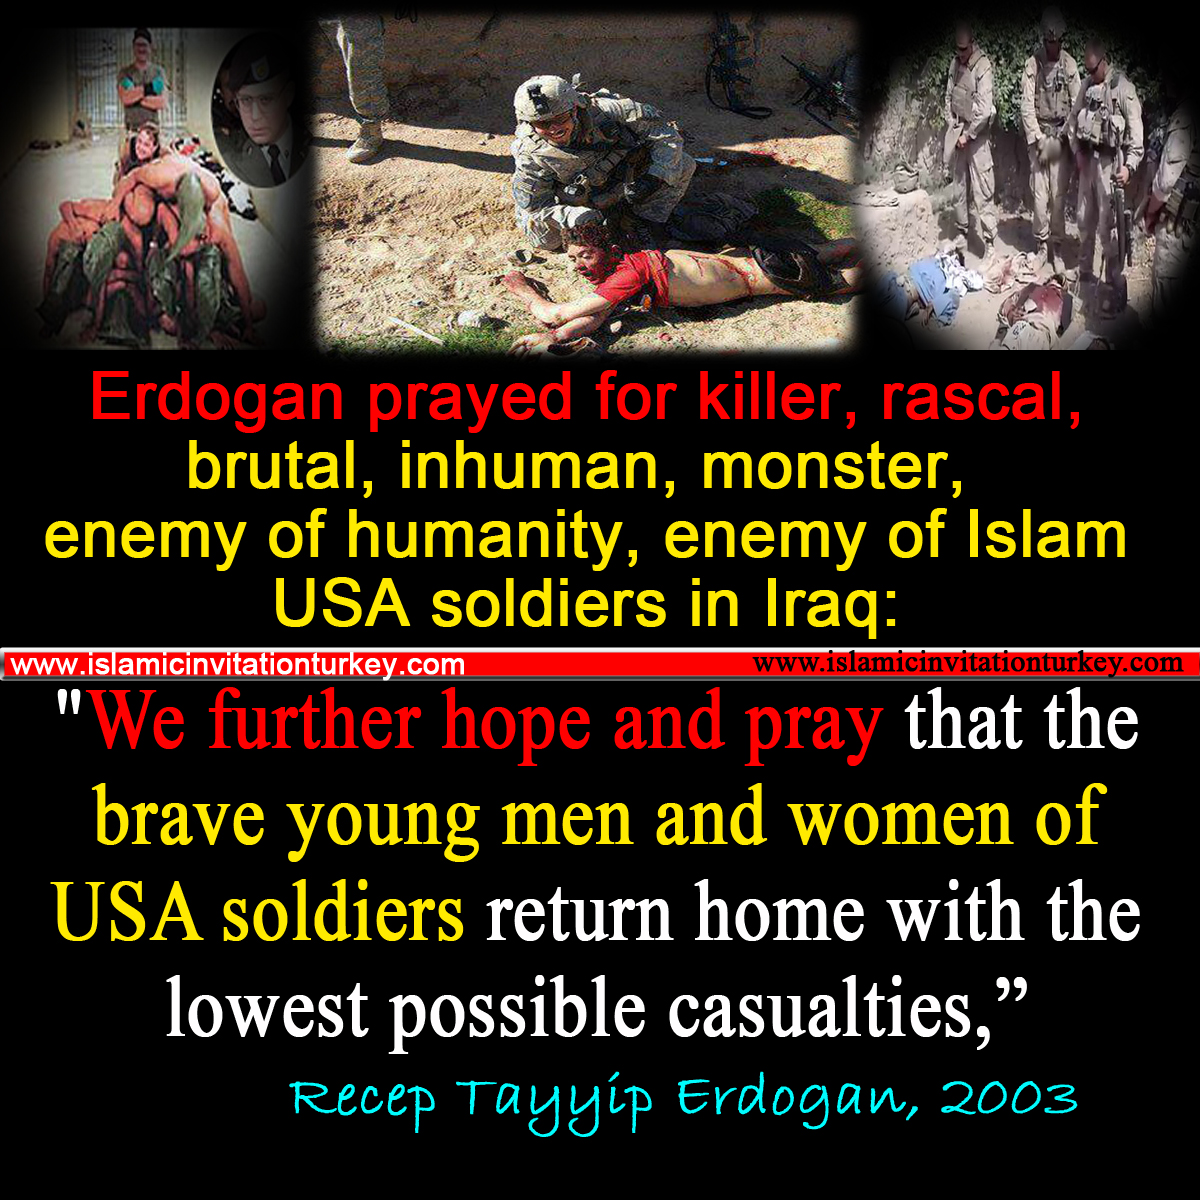 erdogan prayed usa soldiers